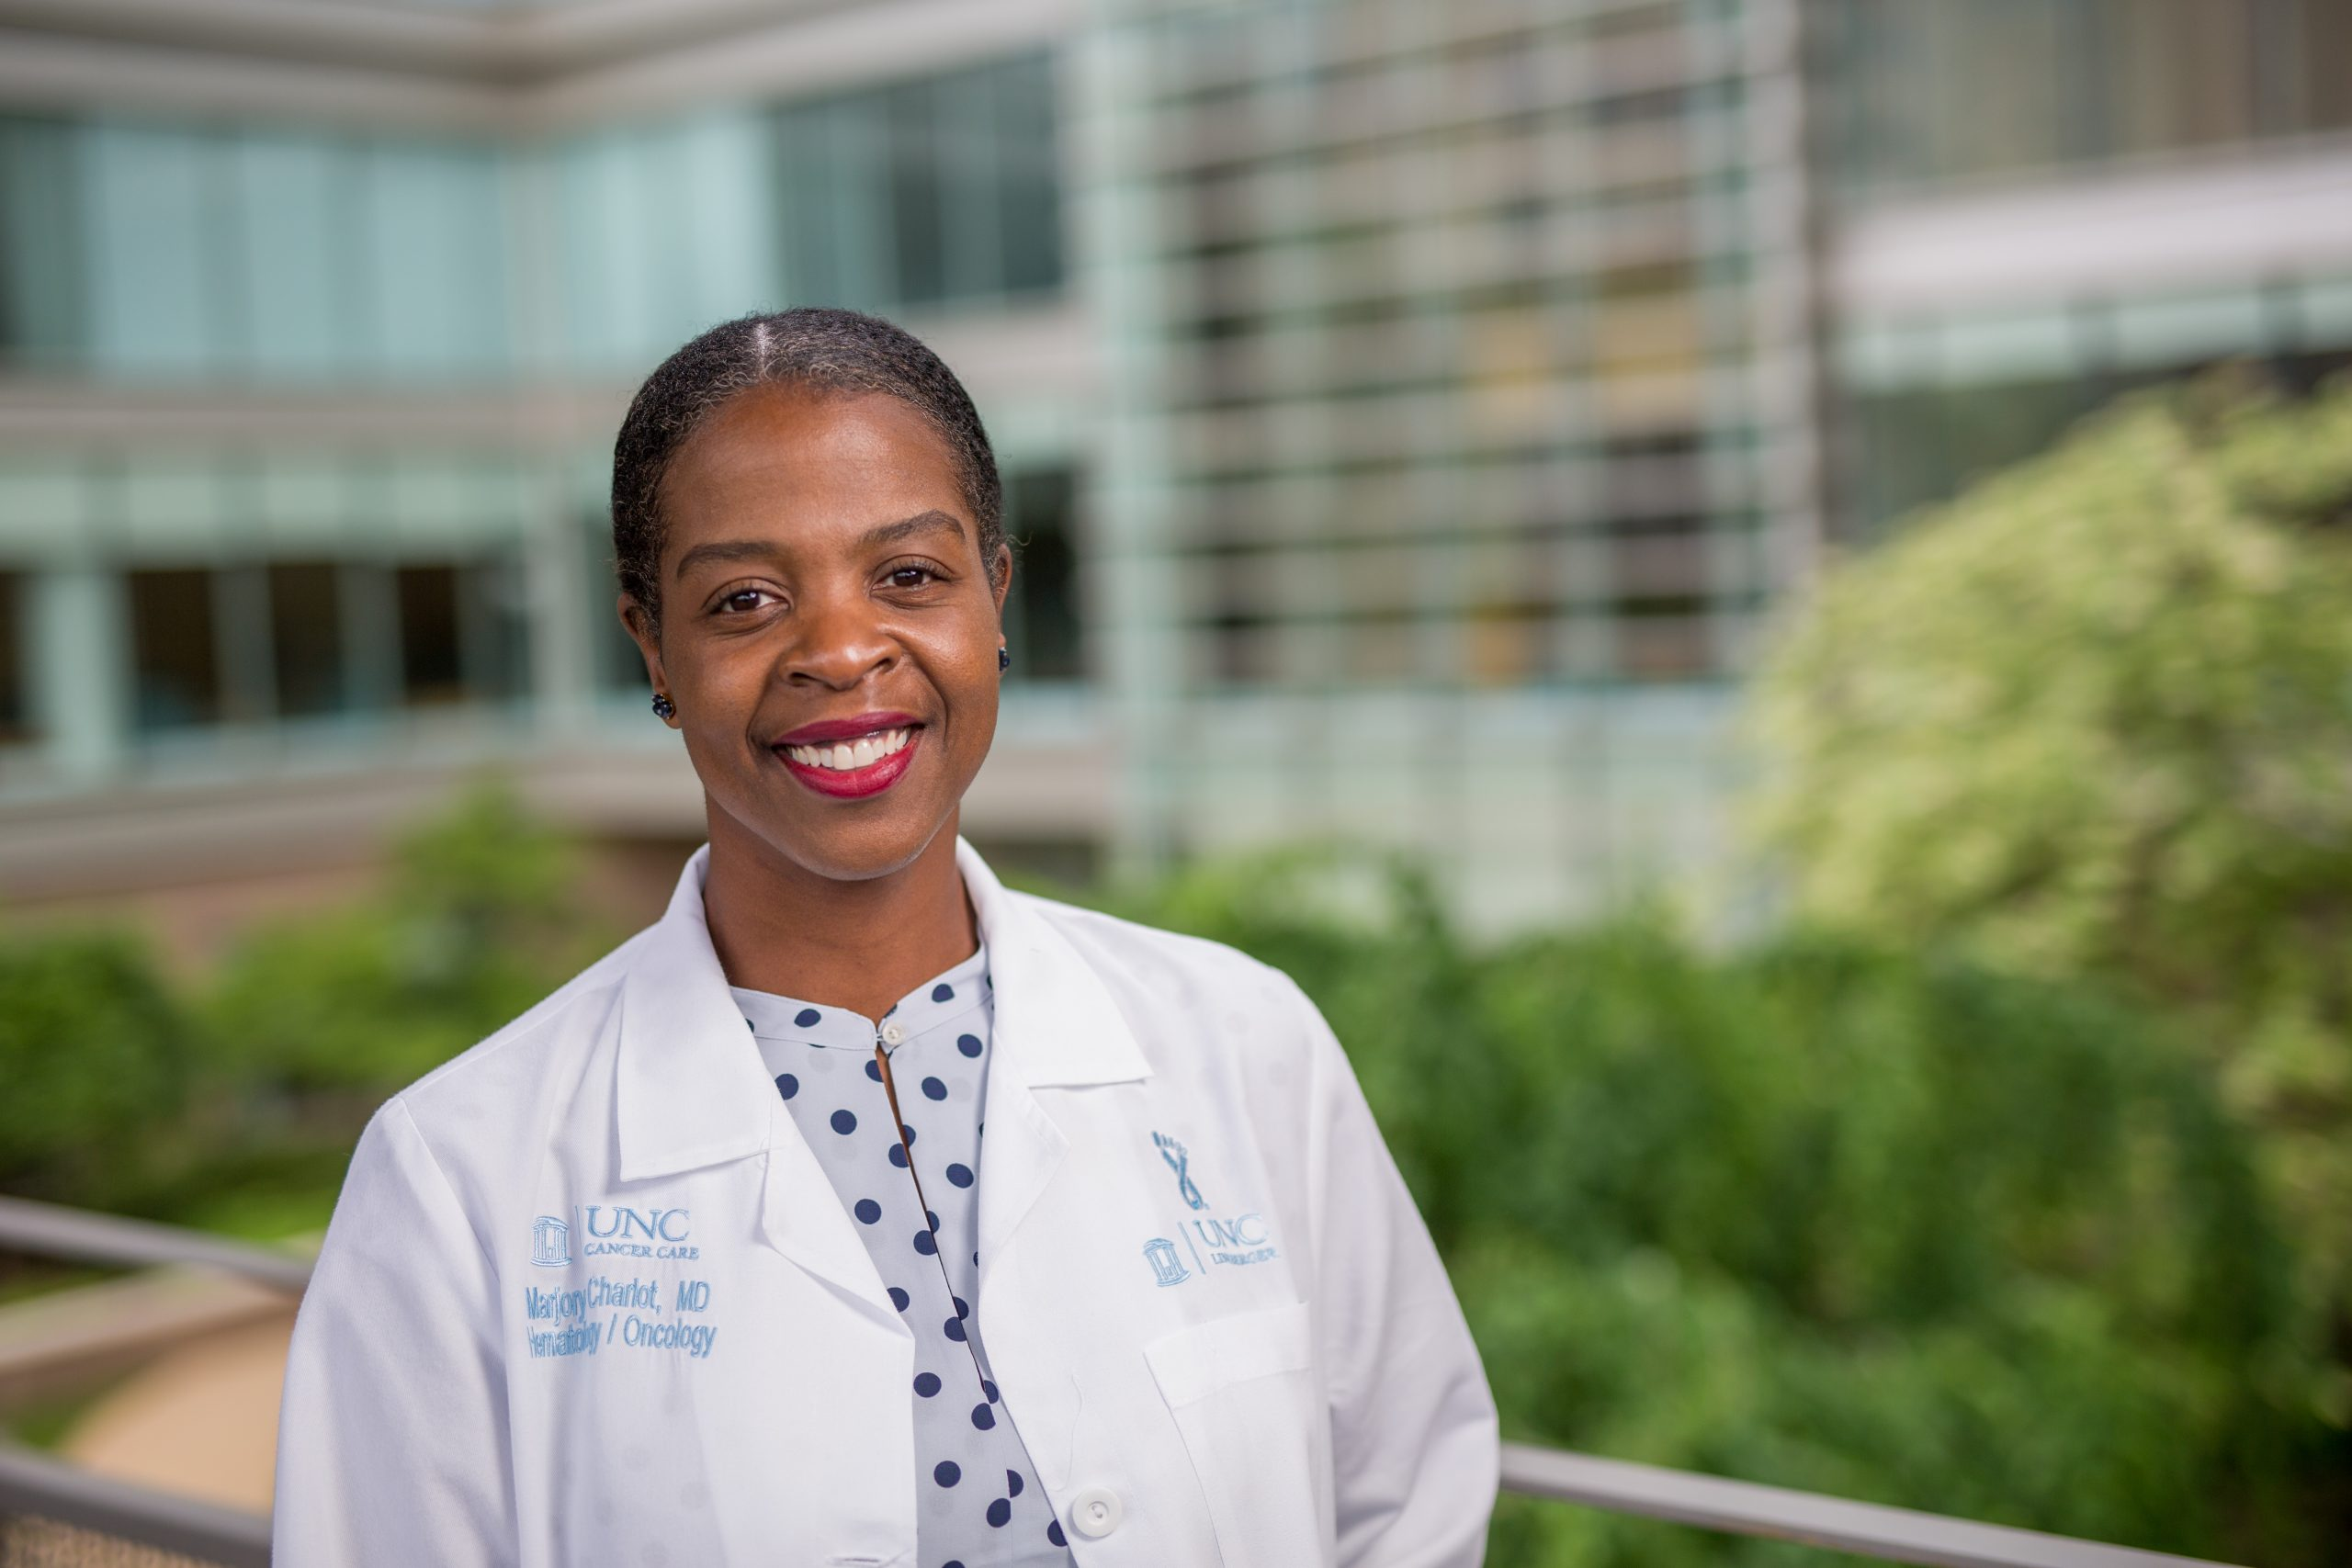 ASCO grant supports Charlot's study of an app to encourage Black women to participate in breast cancer research